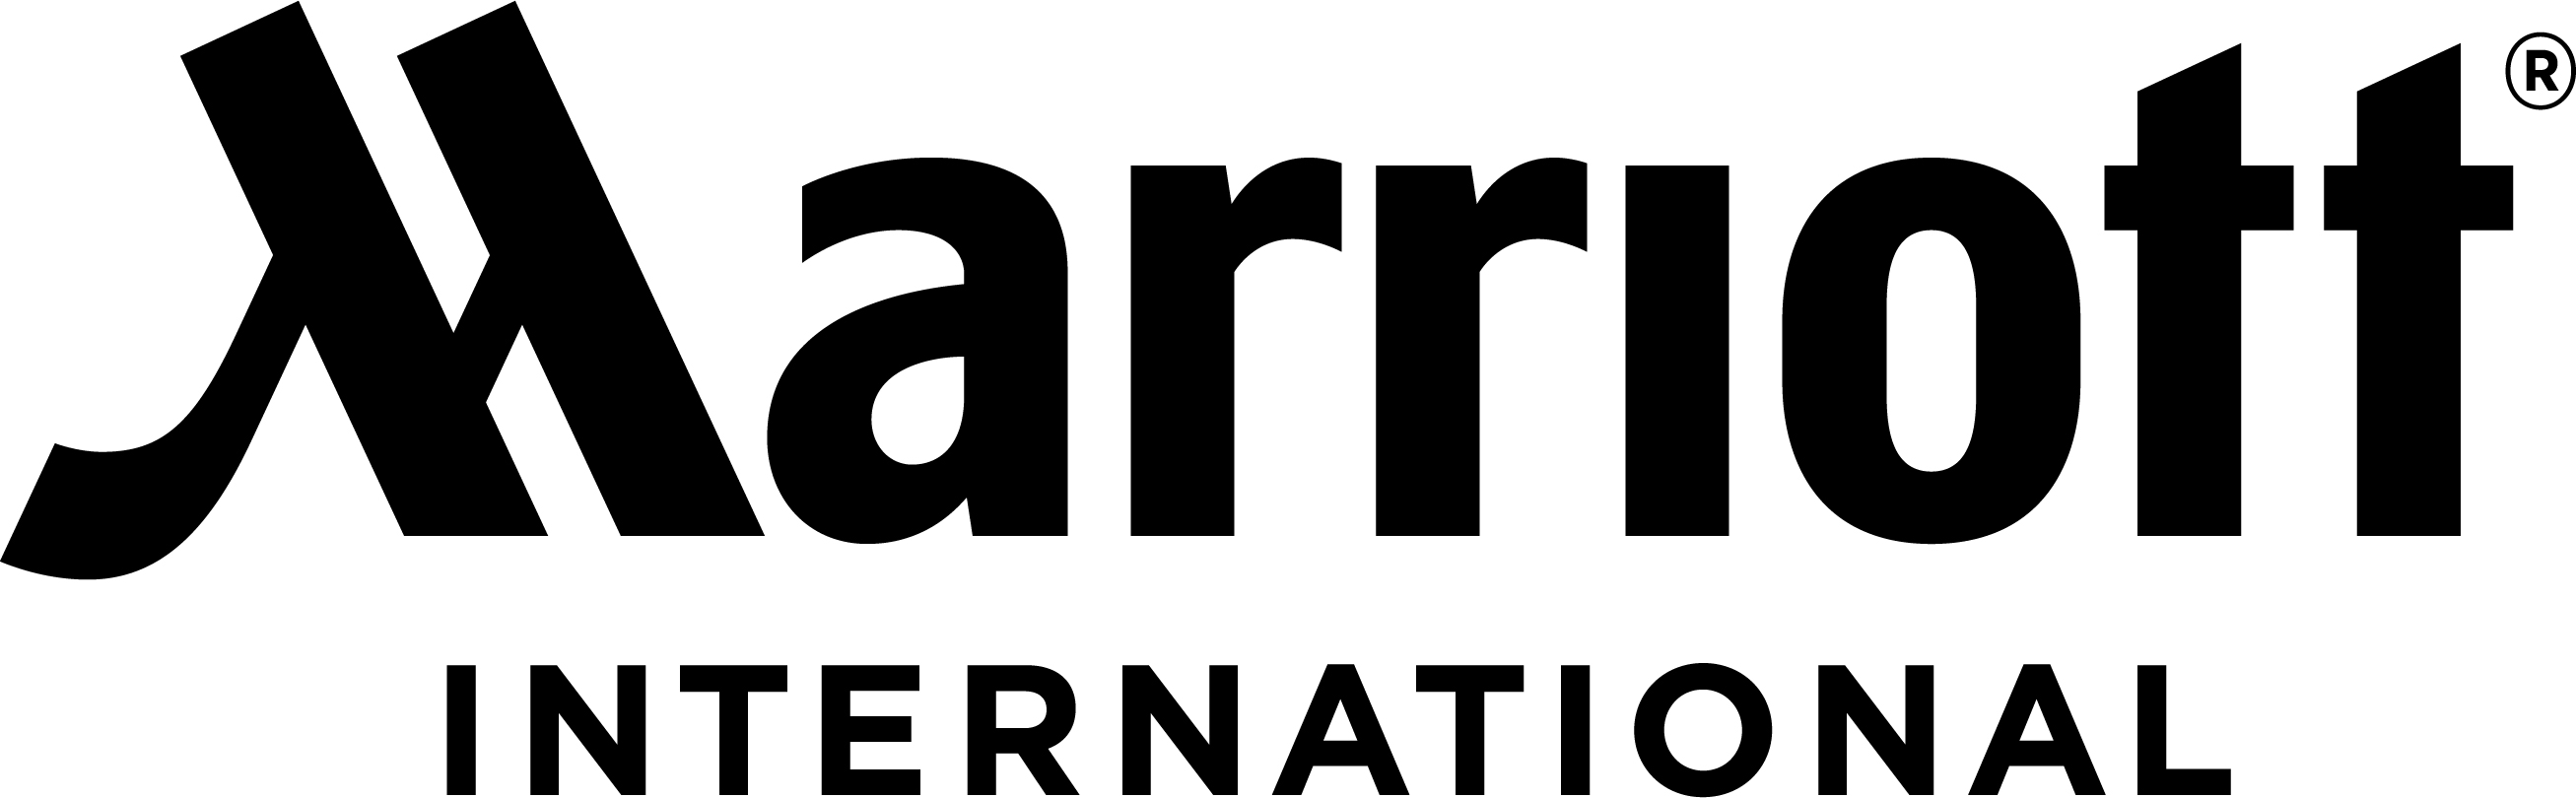 Marriott International2